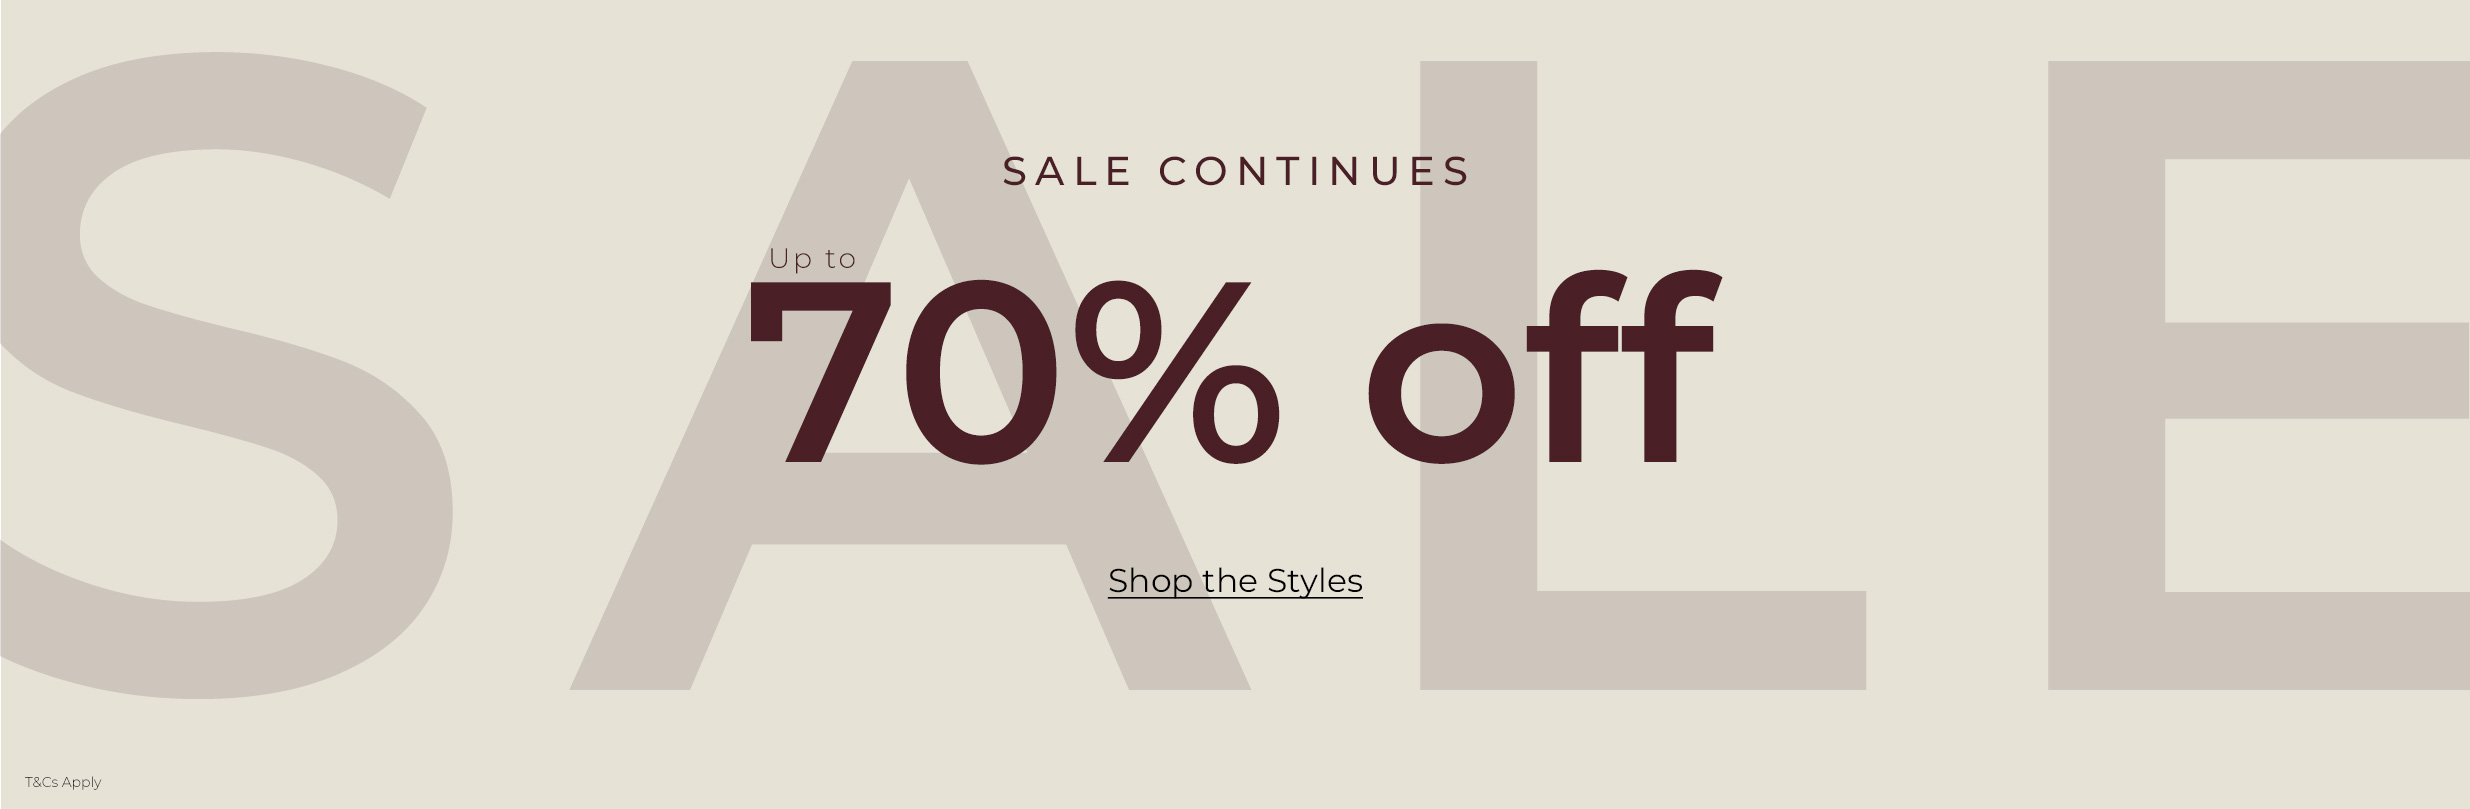 New Lines Added - up to 70% off Sale